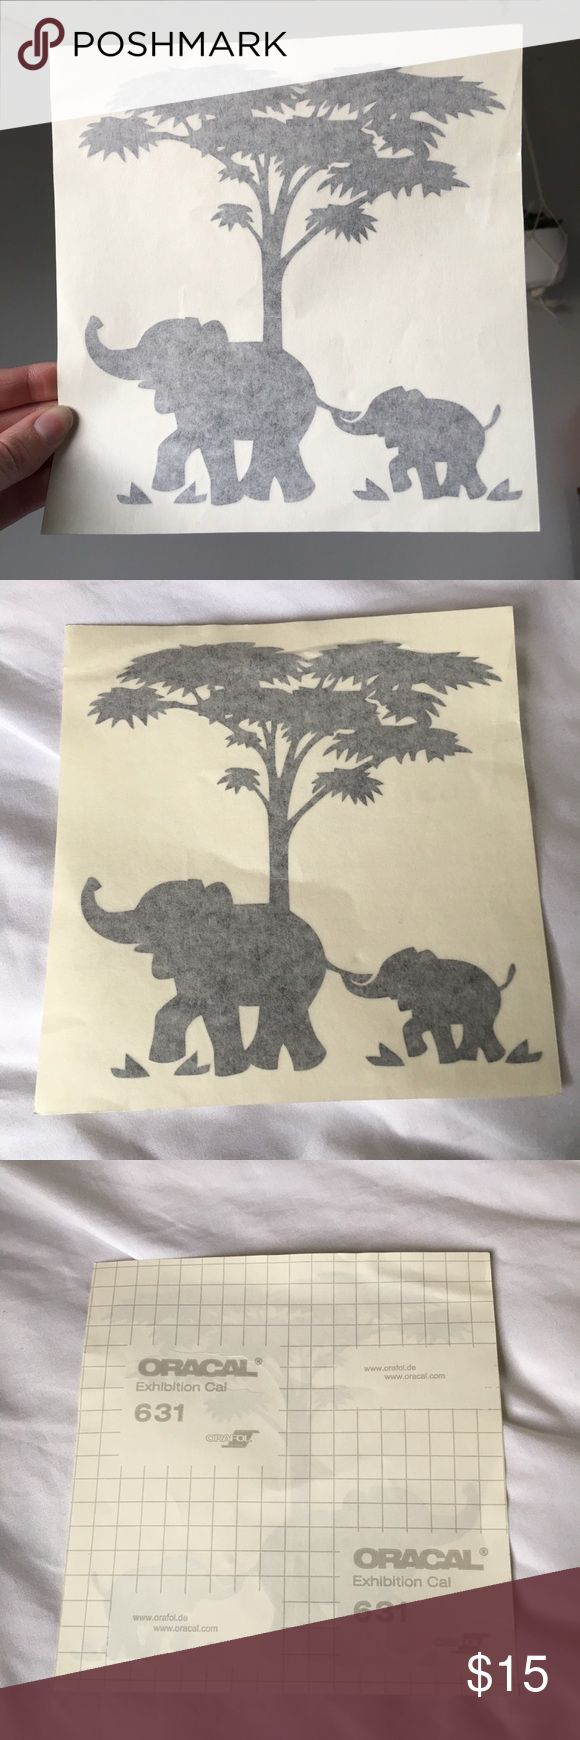 Elephant Laptop Decal Super cute if you have a Mac, the first elephant is supposed to be holding the apple with its trunk. Never used. Accessories Laptop Cases #applelaptops